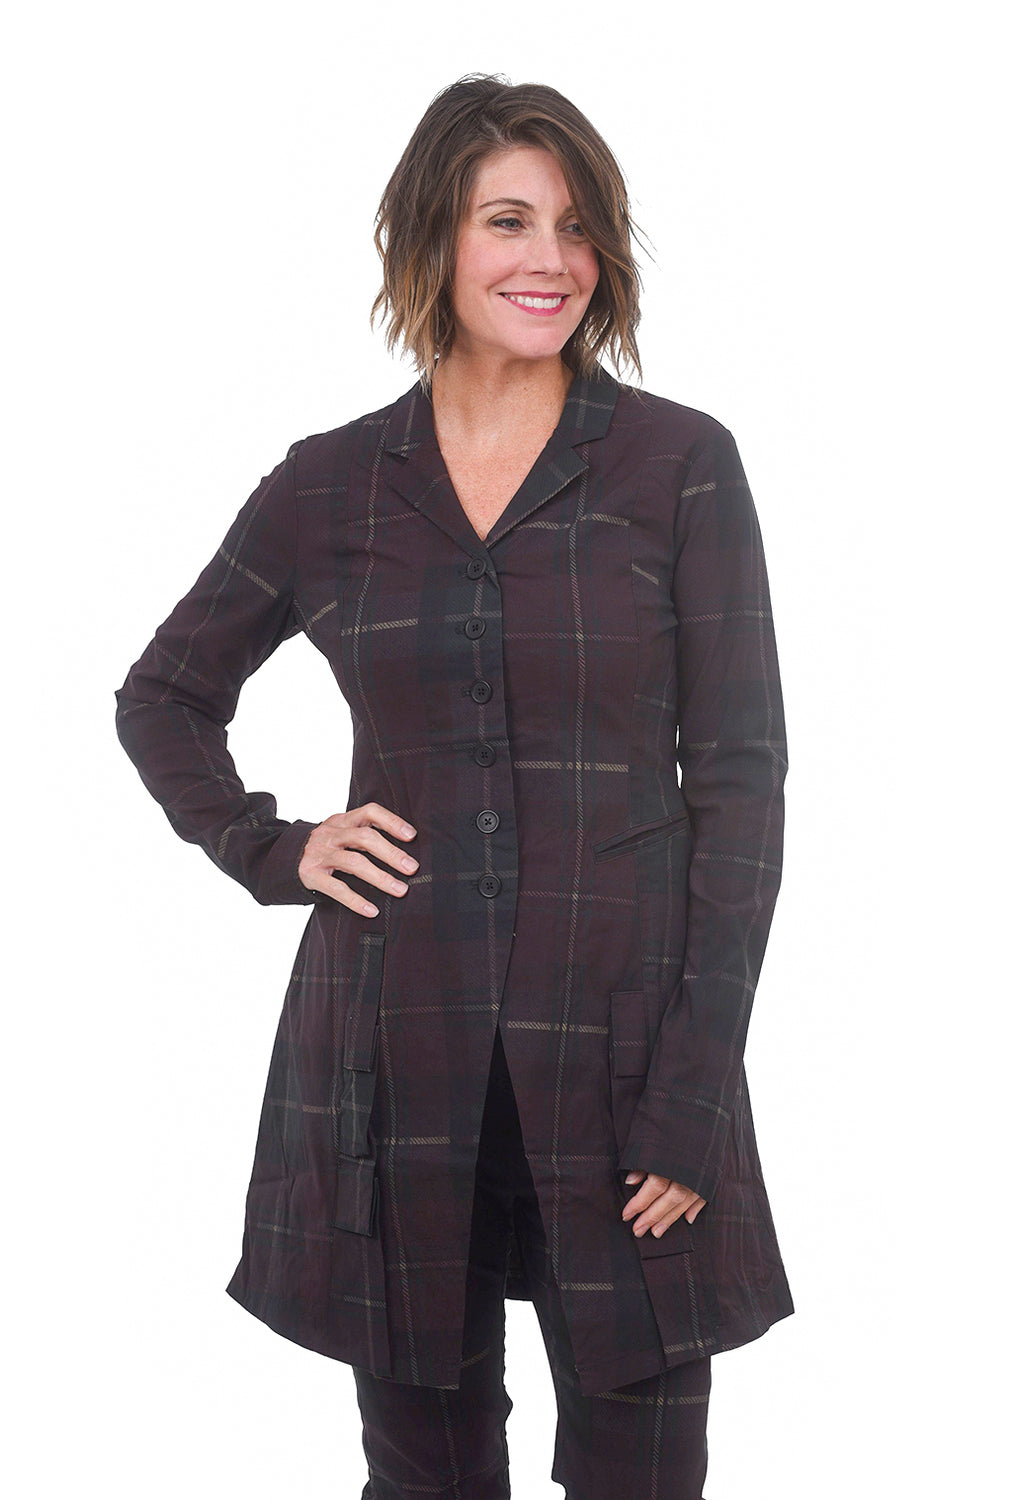 Rundholz Black Label Sig Stretch Twill Long Jacket, Merlot Plaid